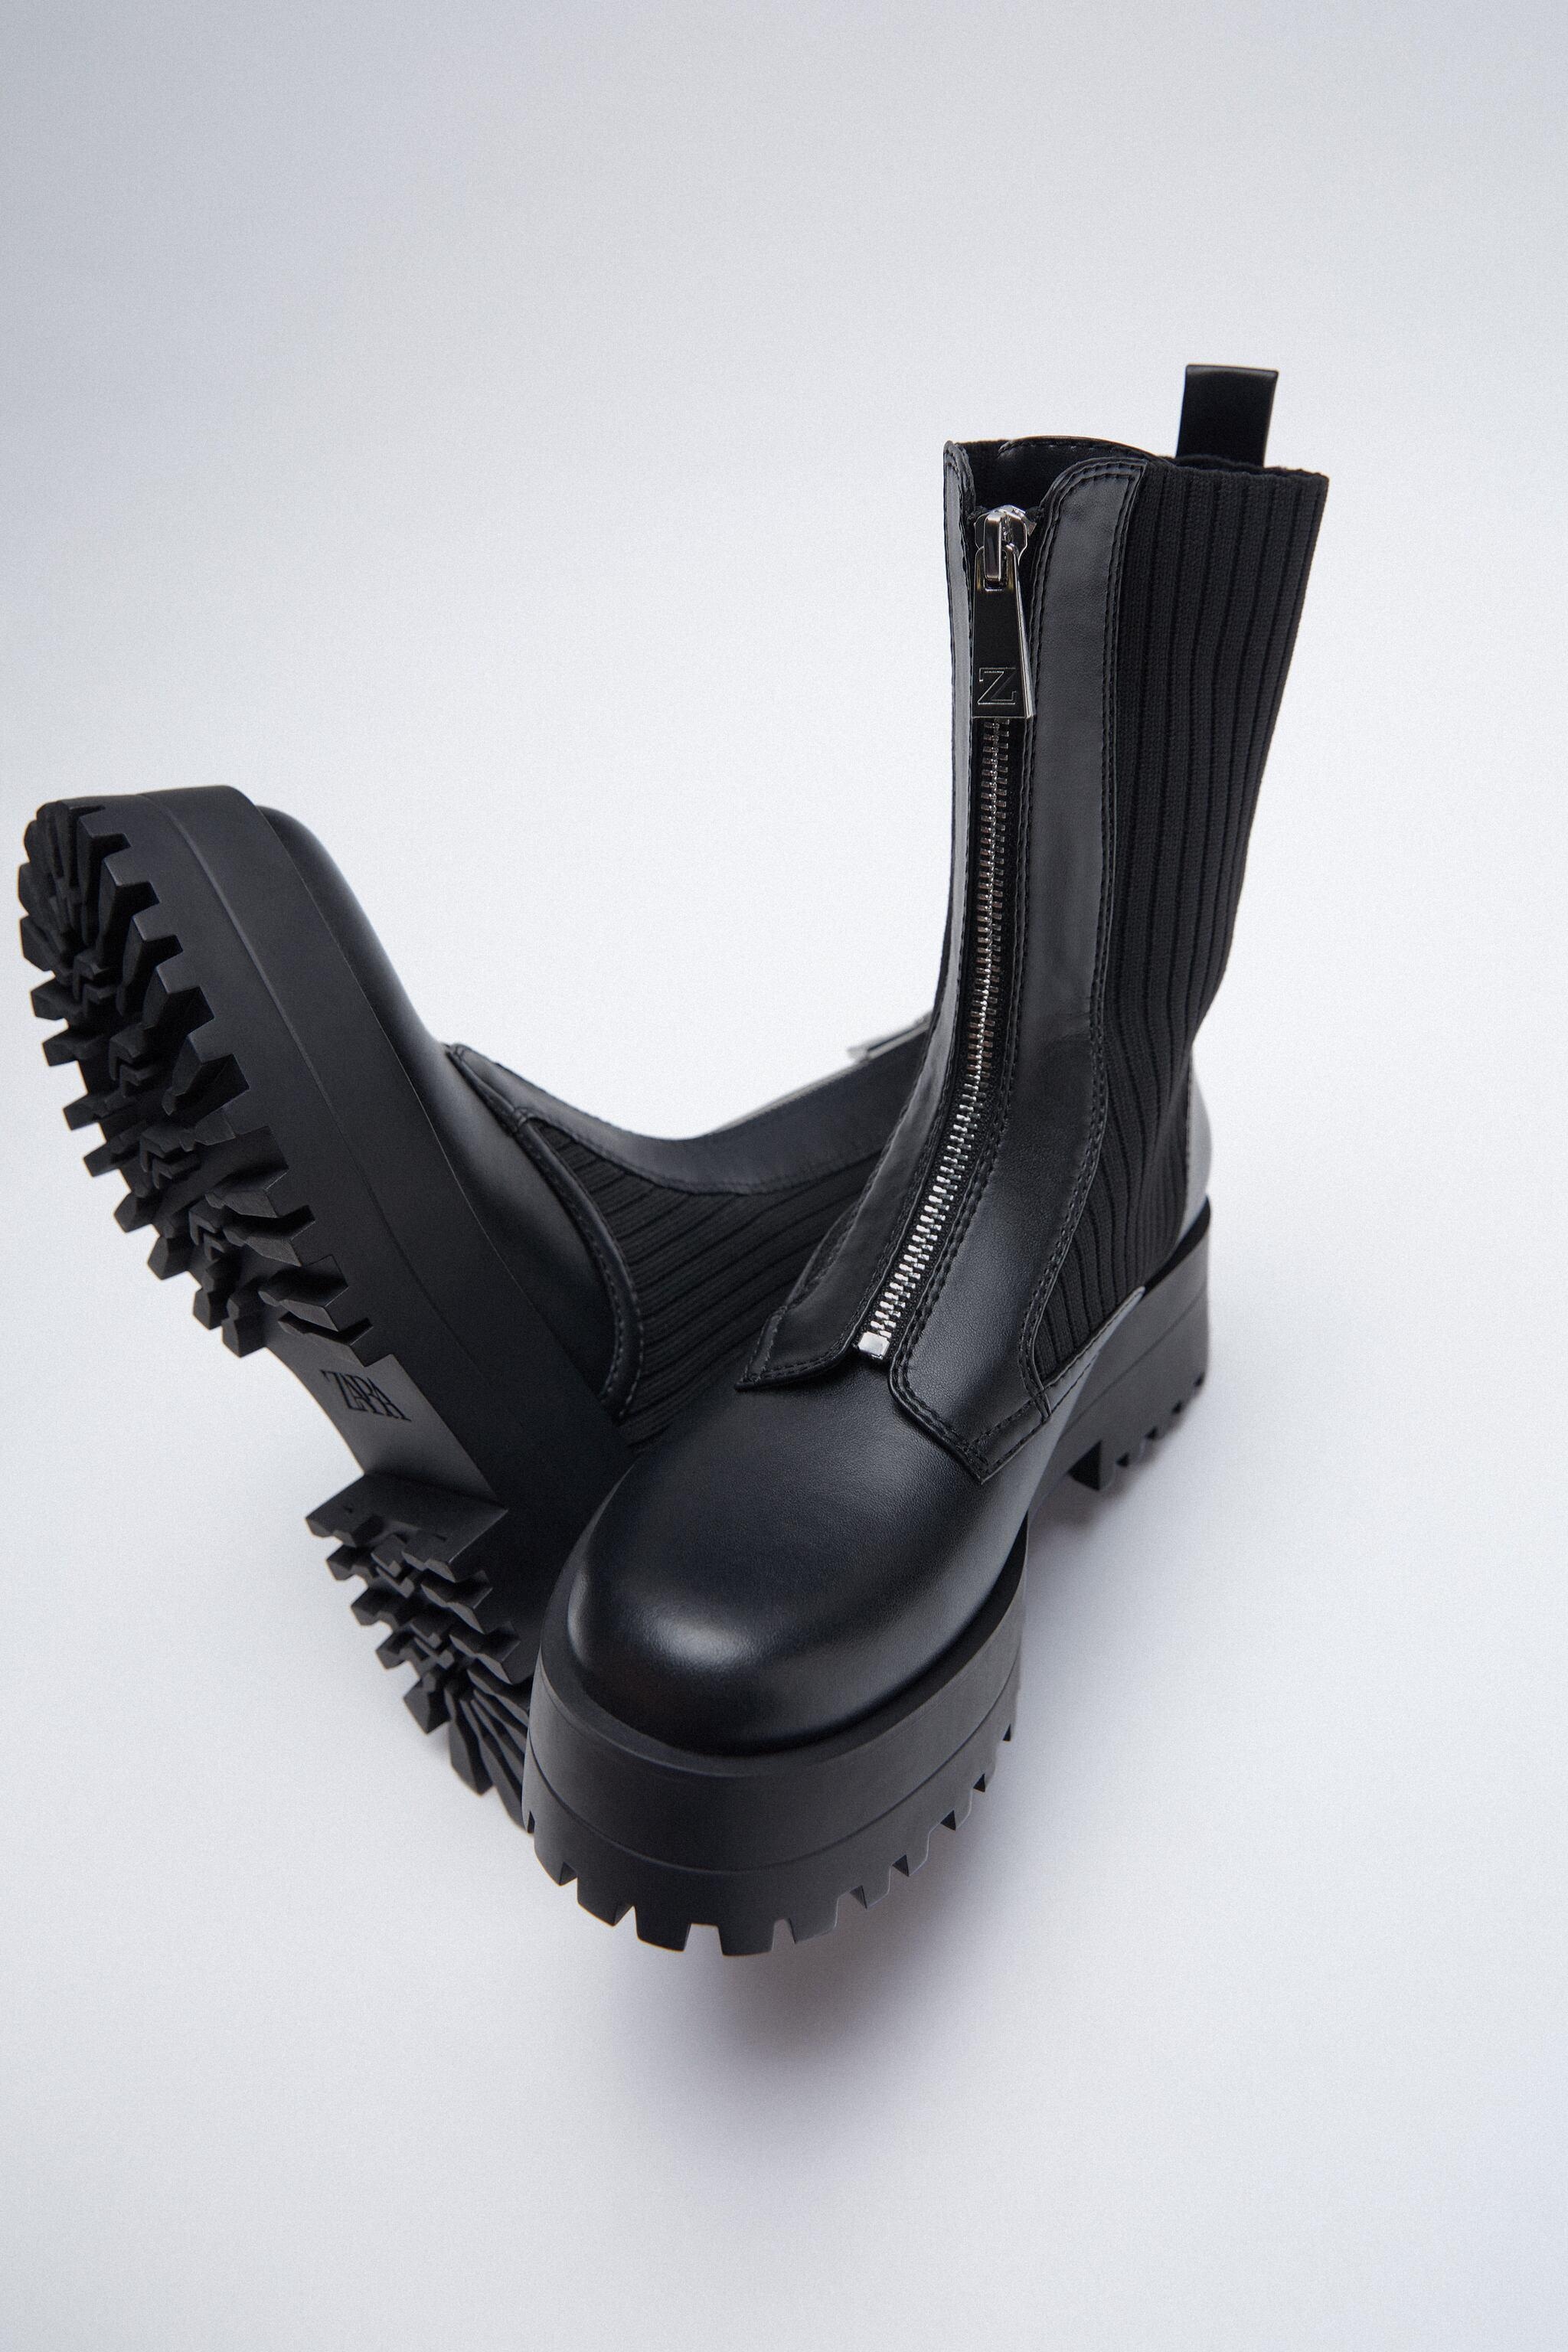 LOW HEELED SOCK-STYLE ZIP ANKLE BOOTS TRF 4